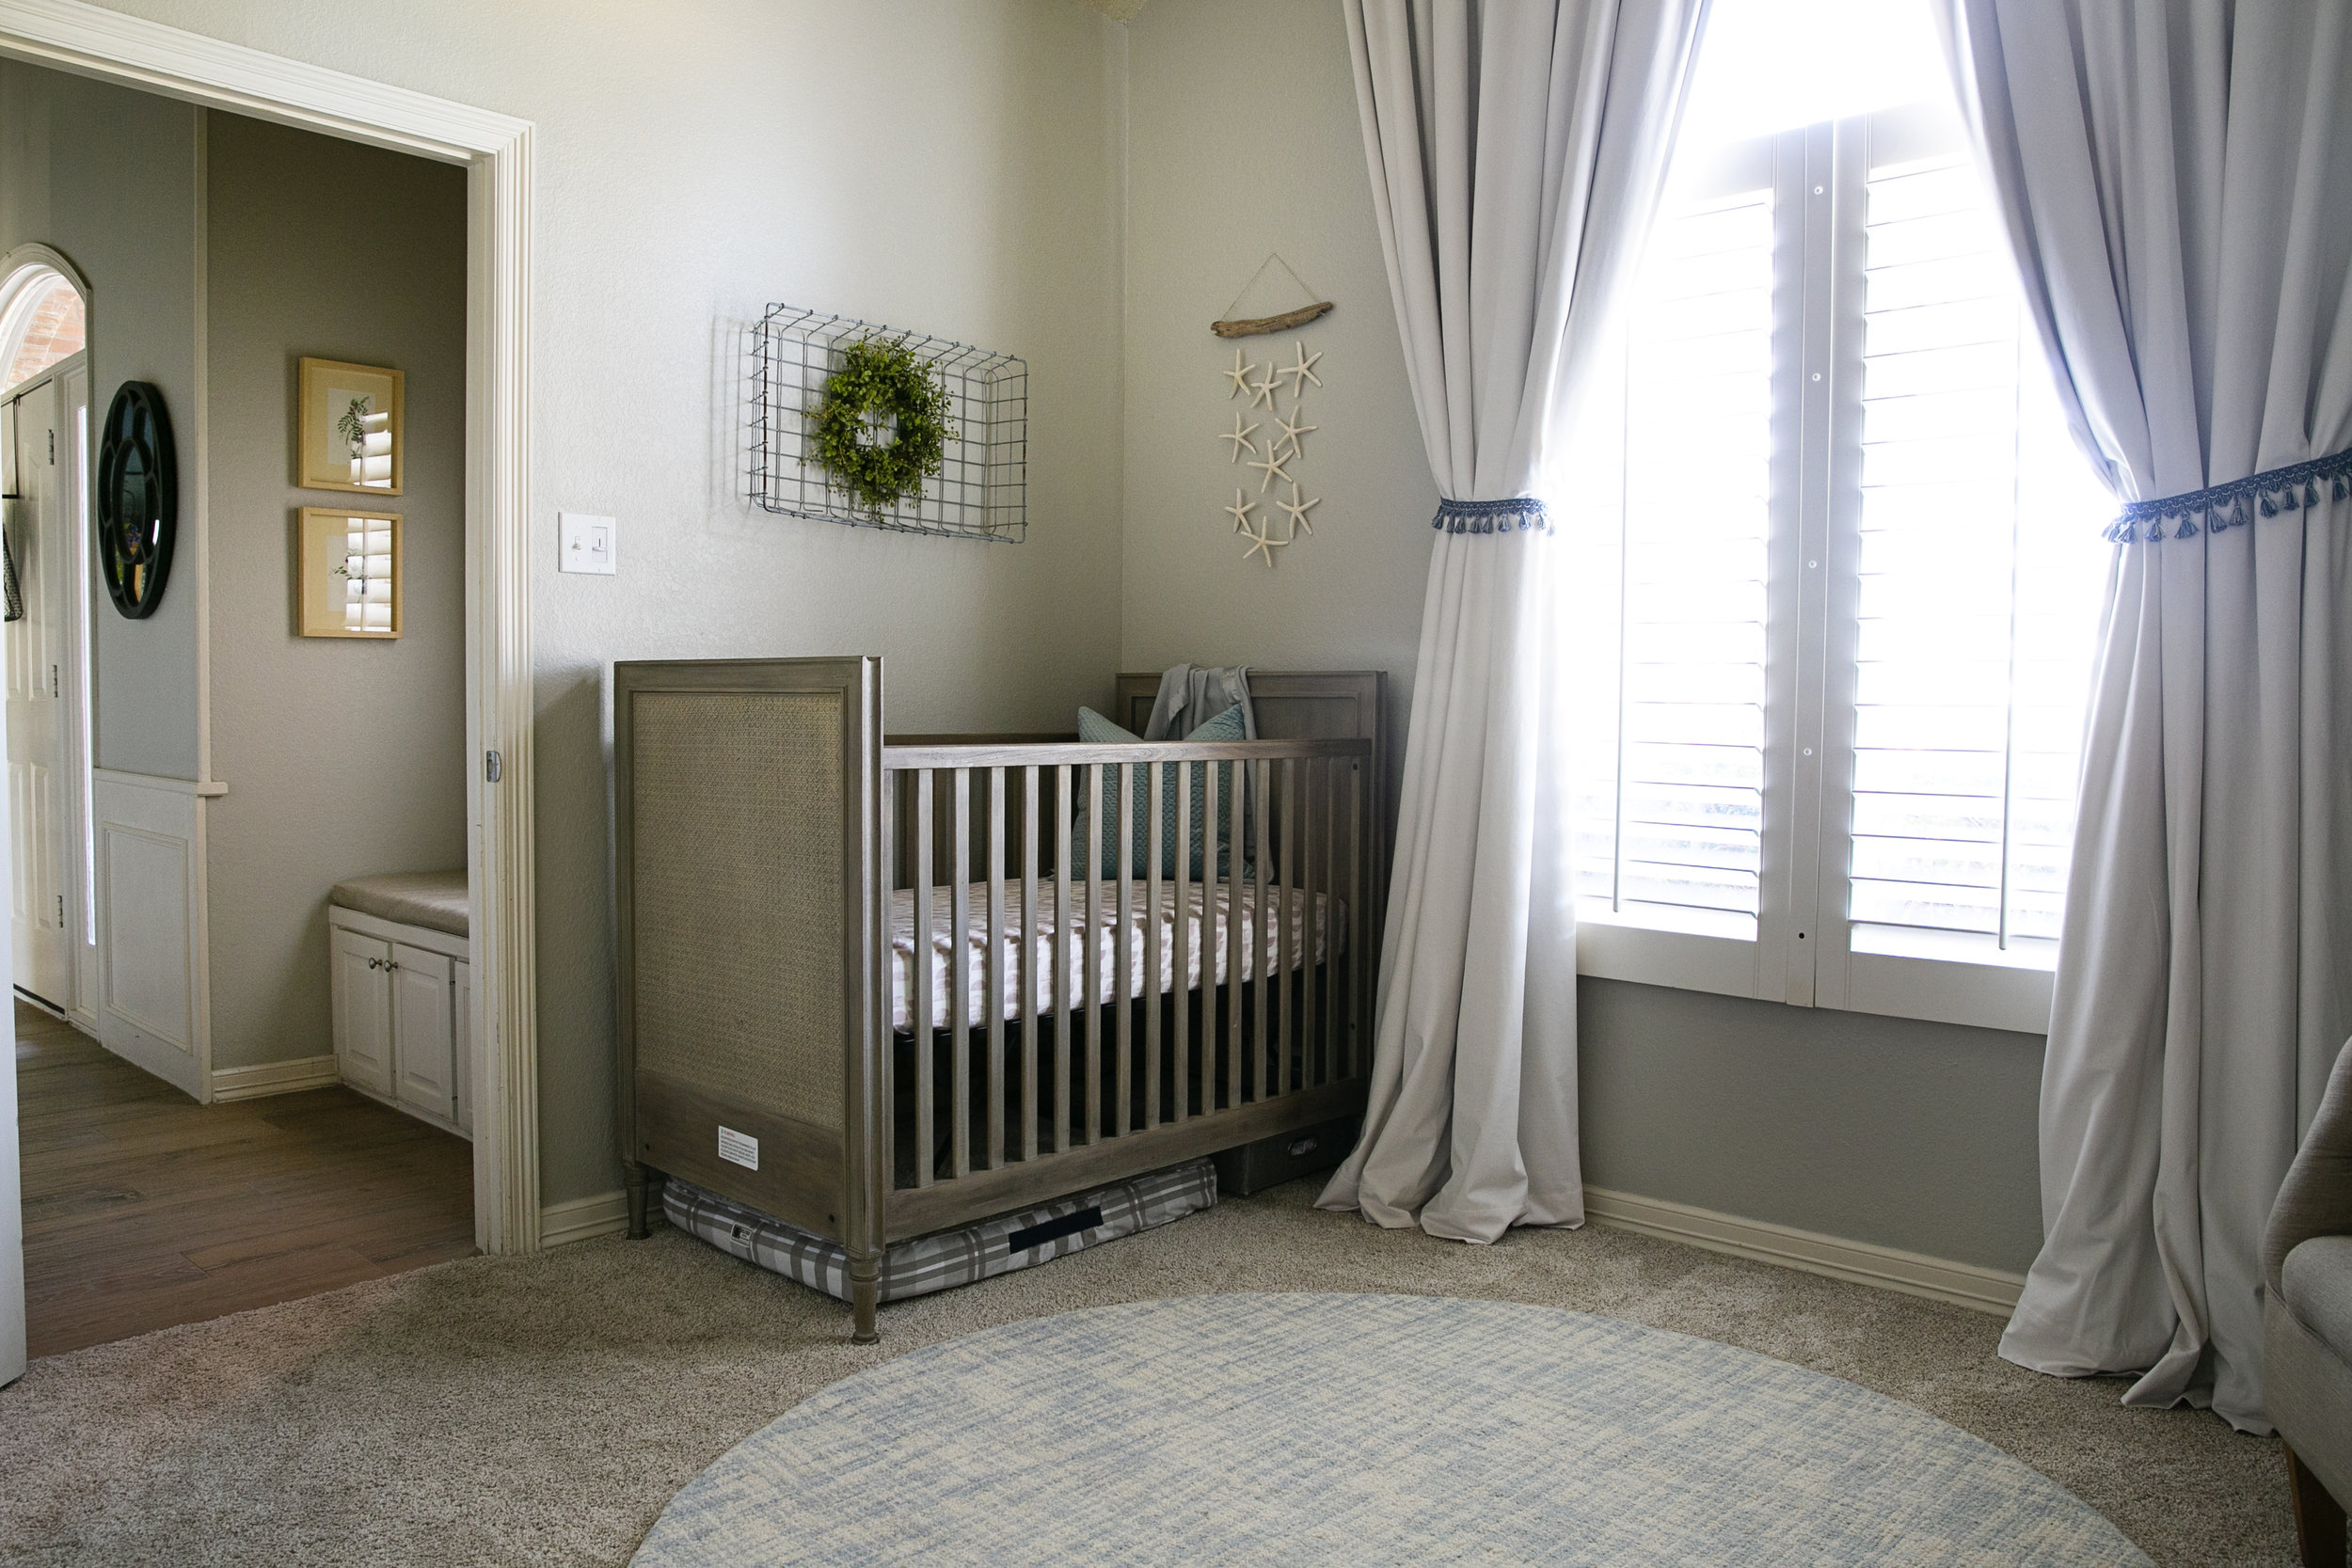 Linda_McMillan_Photography_Costal_Beach_Nursery_02.jpg